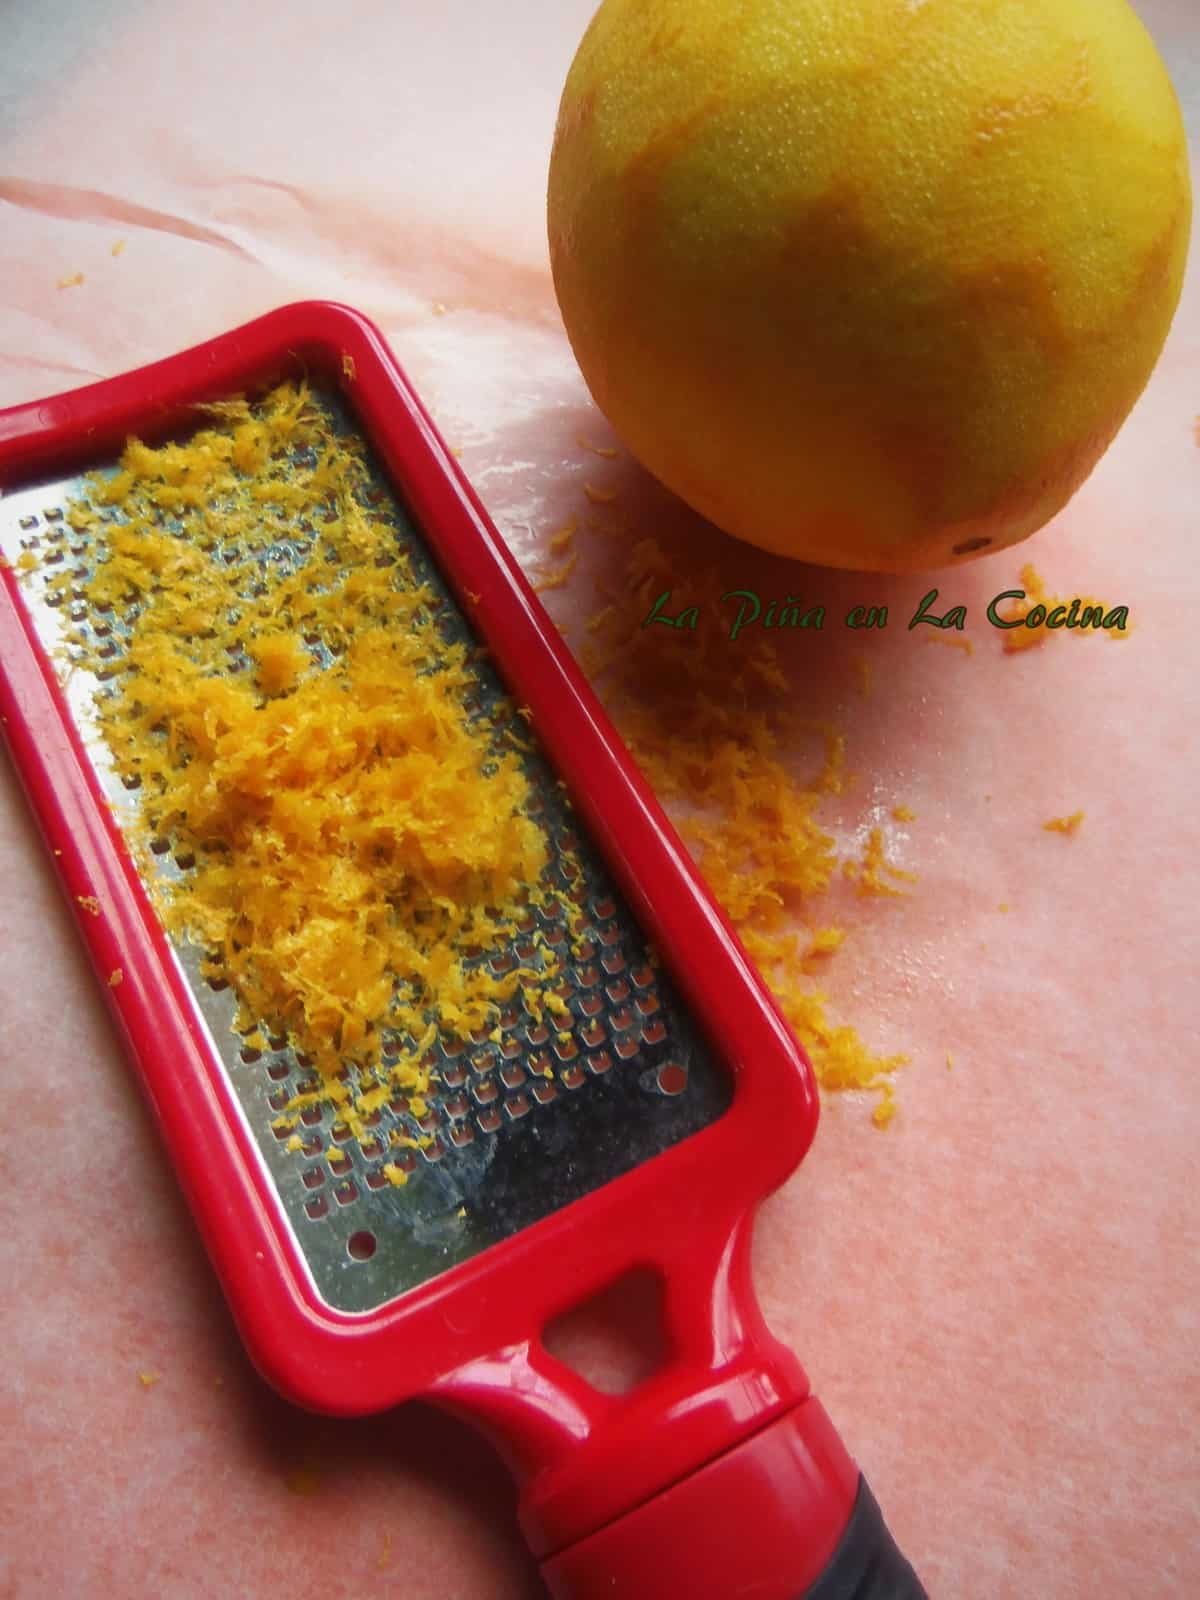 Zest the oranges with the zester facing up. This way you can see where you need to move next.